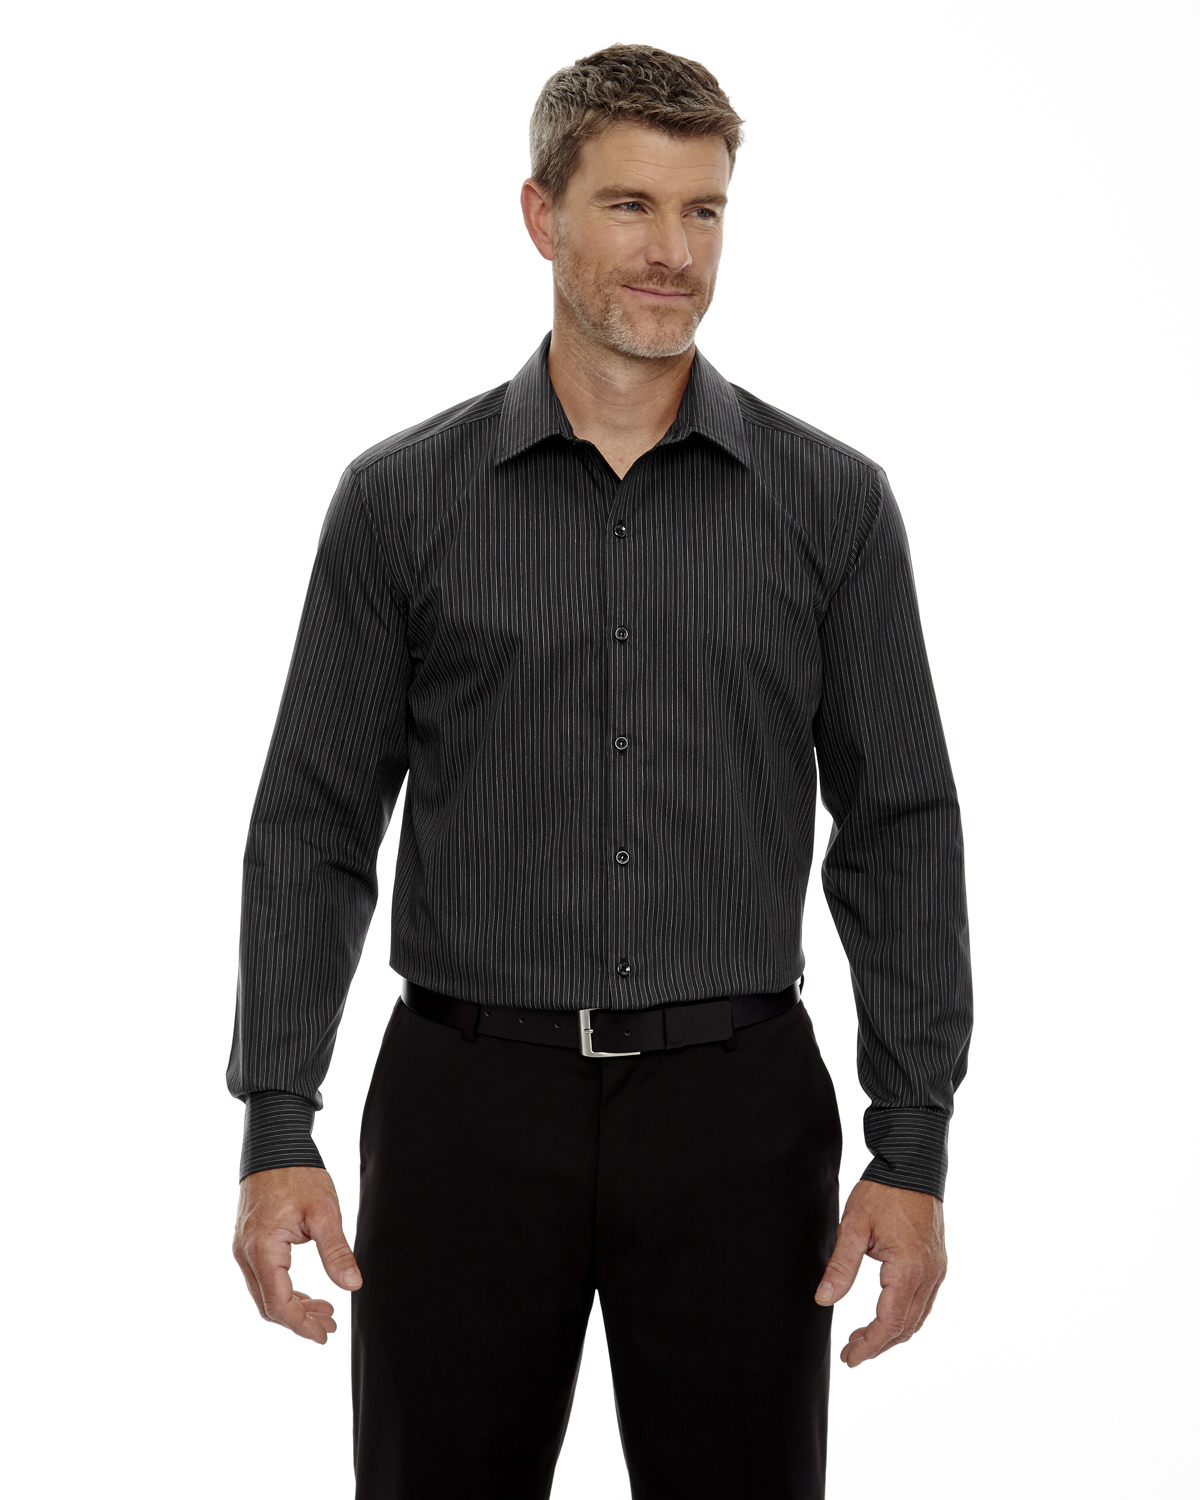 North End Men's Boardwalk Shirt Style 88674 – Black